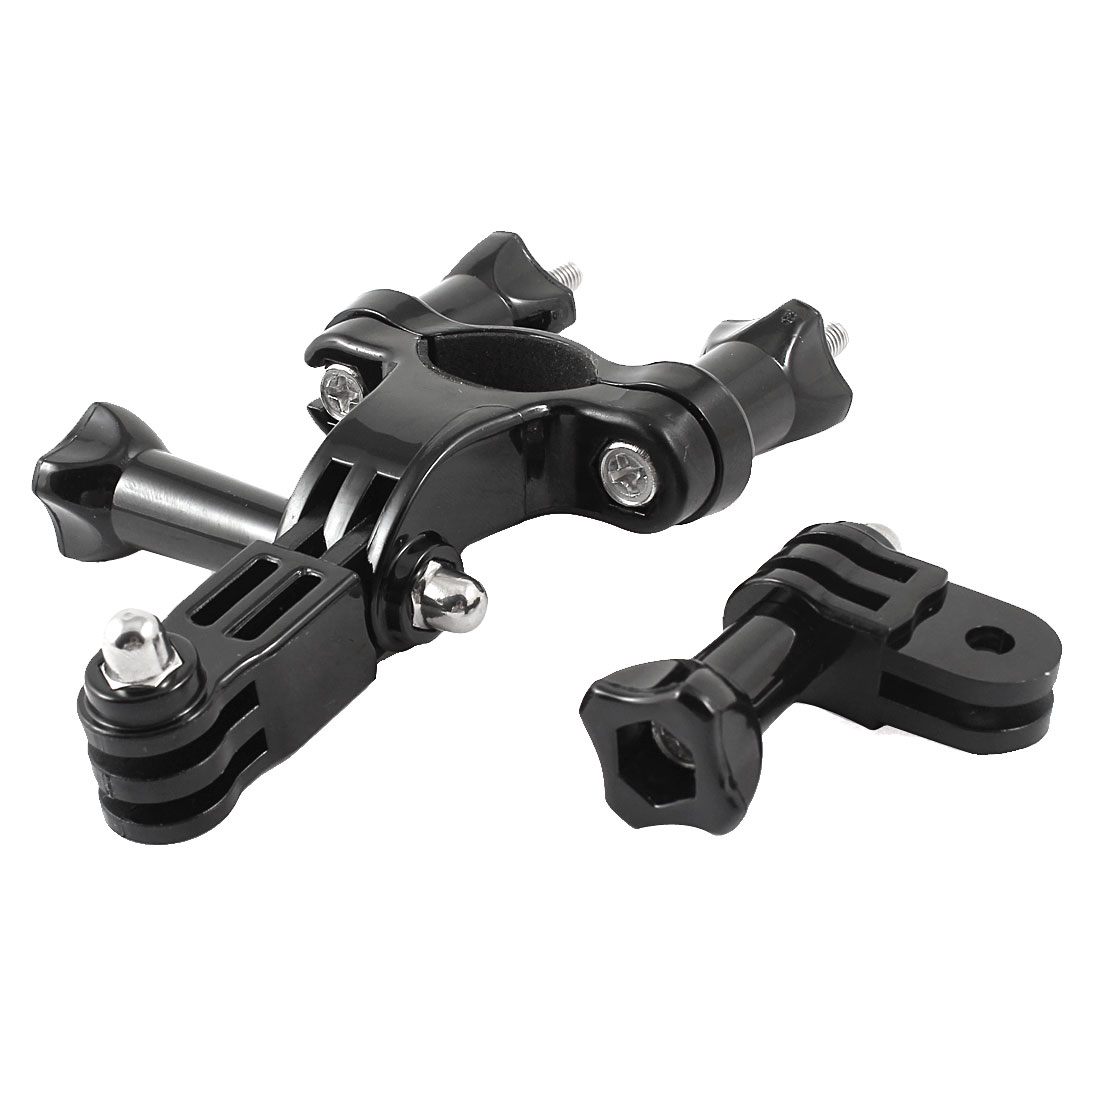 Mountain Bike Bicycle 3.5cm Handlebar Seatpost Pole Mount Holder Bracket for Gopro Hero 2/1 Camera